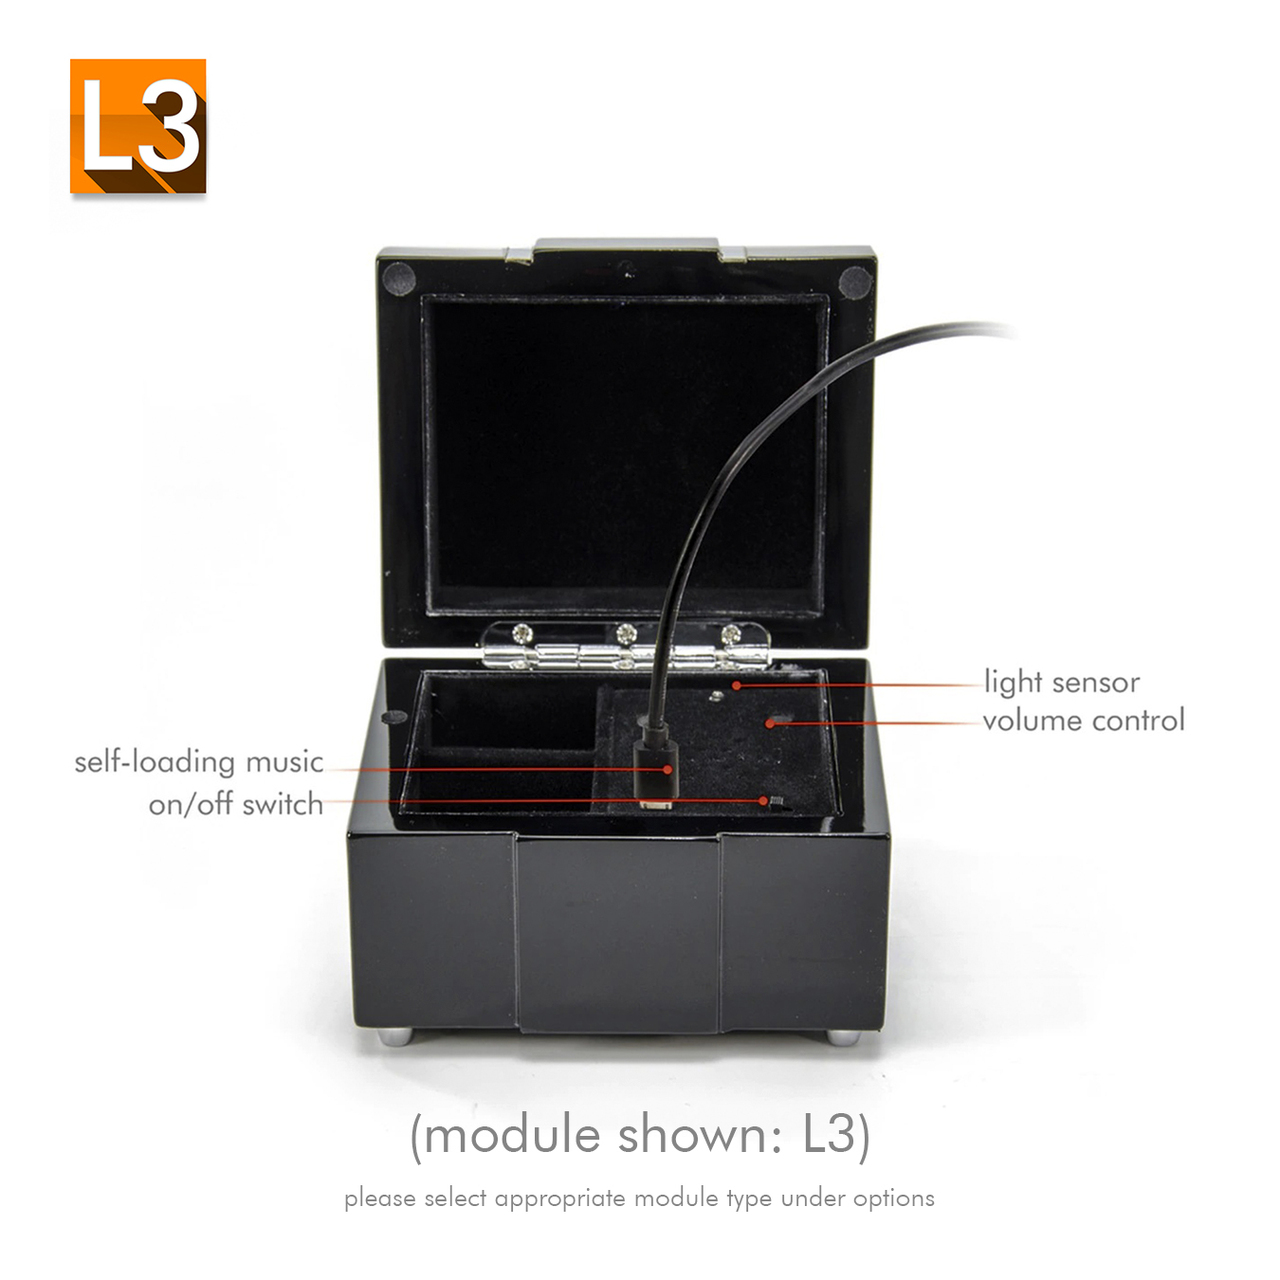 Modern Black Lacquer Custom USB Sound Module Jewelry Box with Chrome Accents